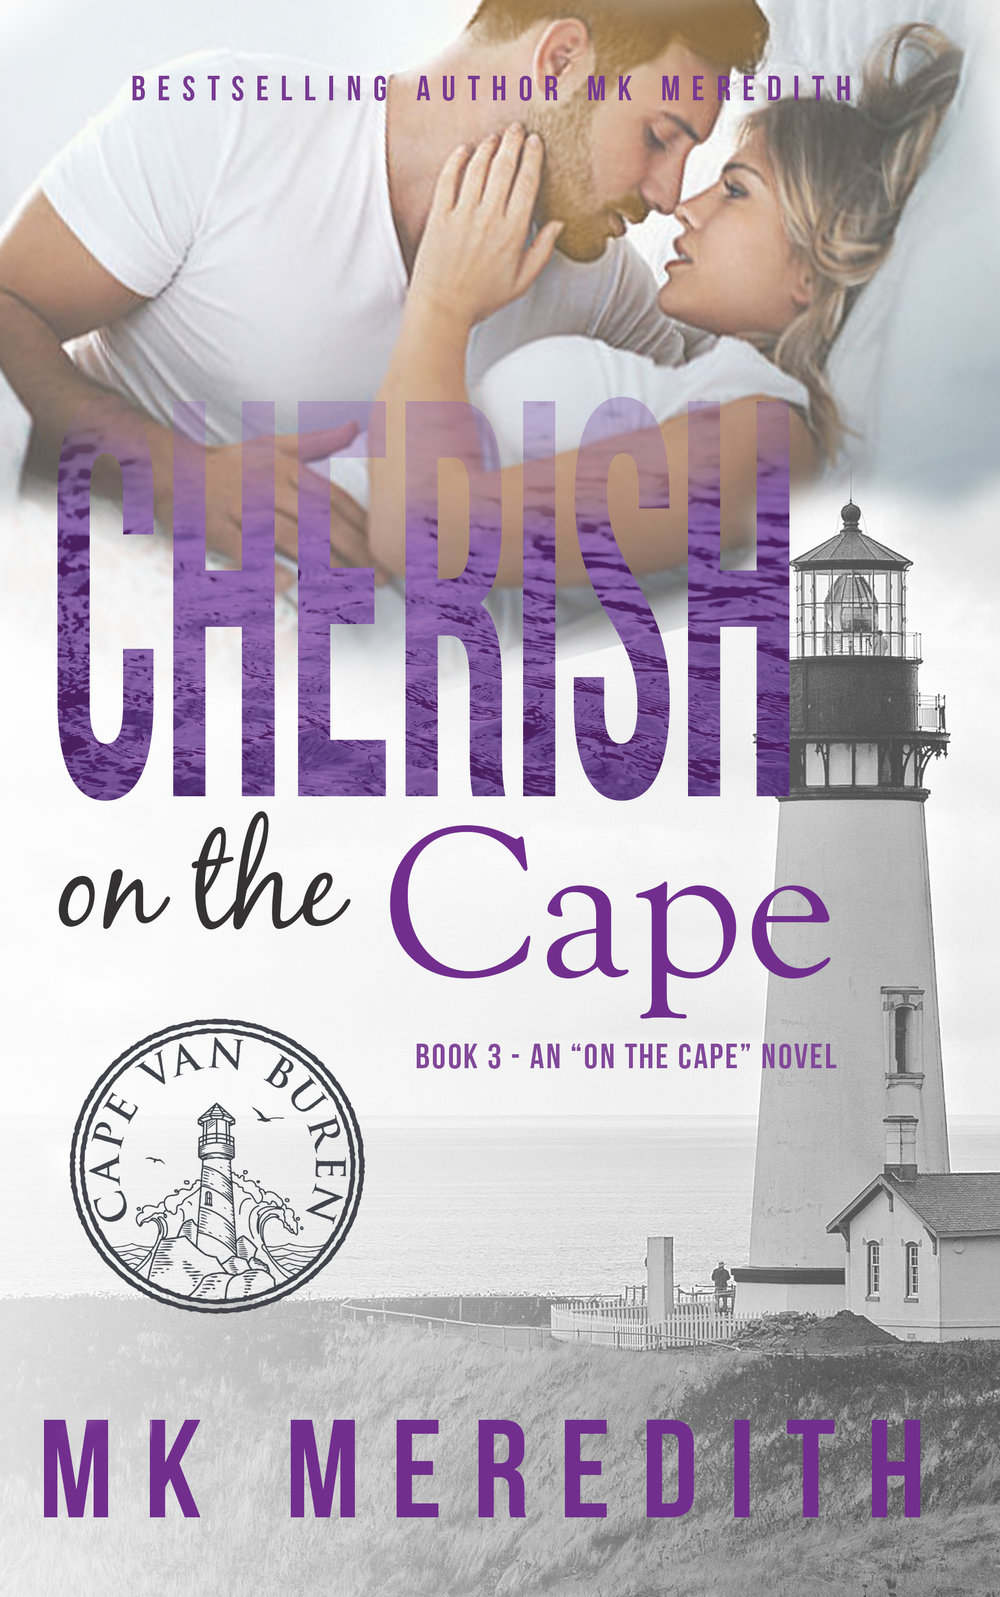 Cherish on the Cape Kindle.jpg